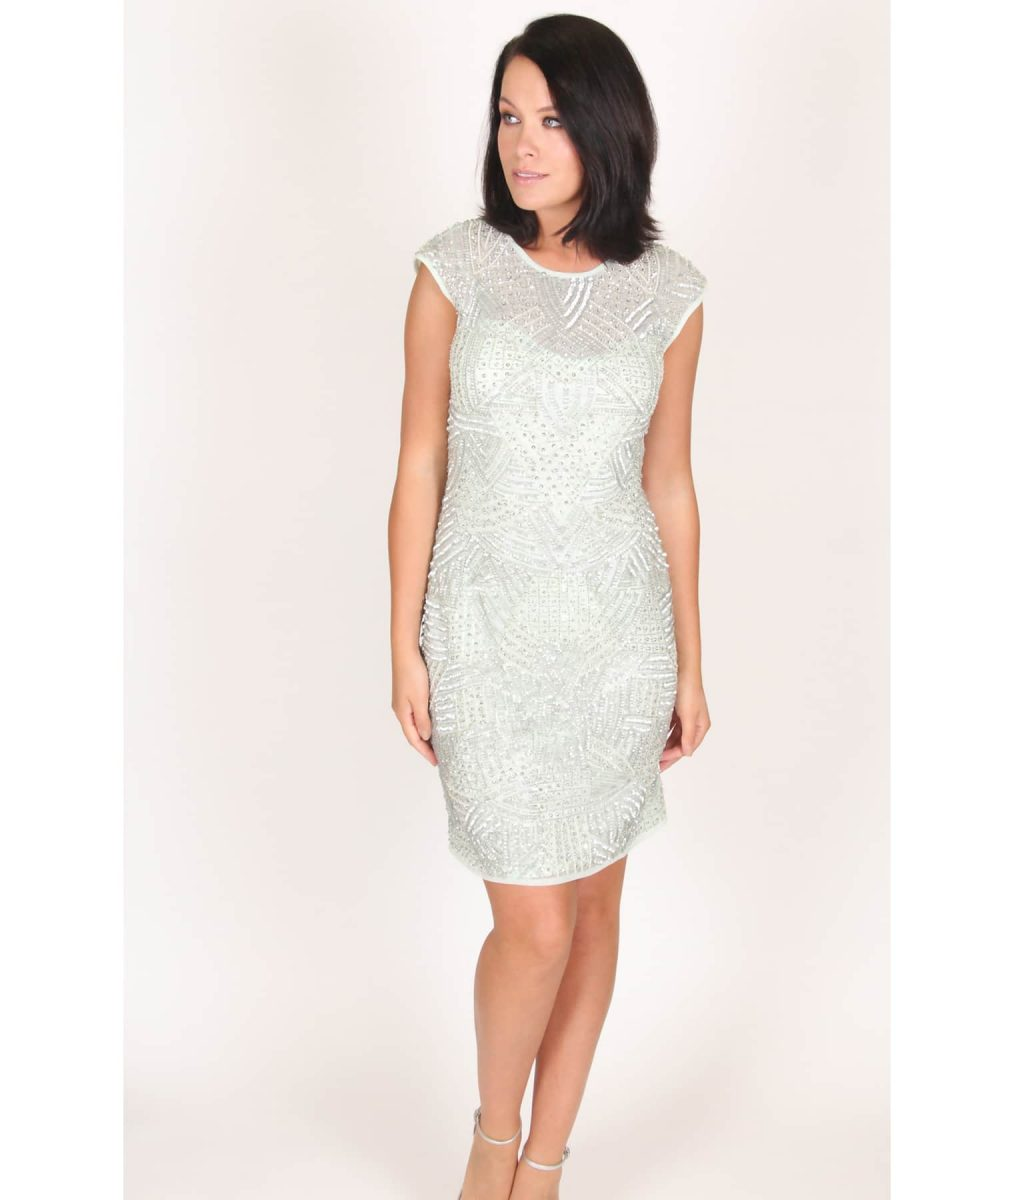 Alila Mint Sequin Party Dress by Lace & Beads